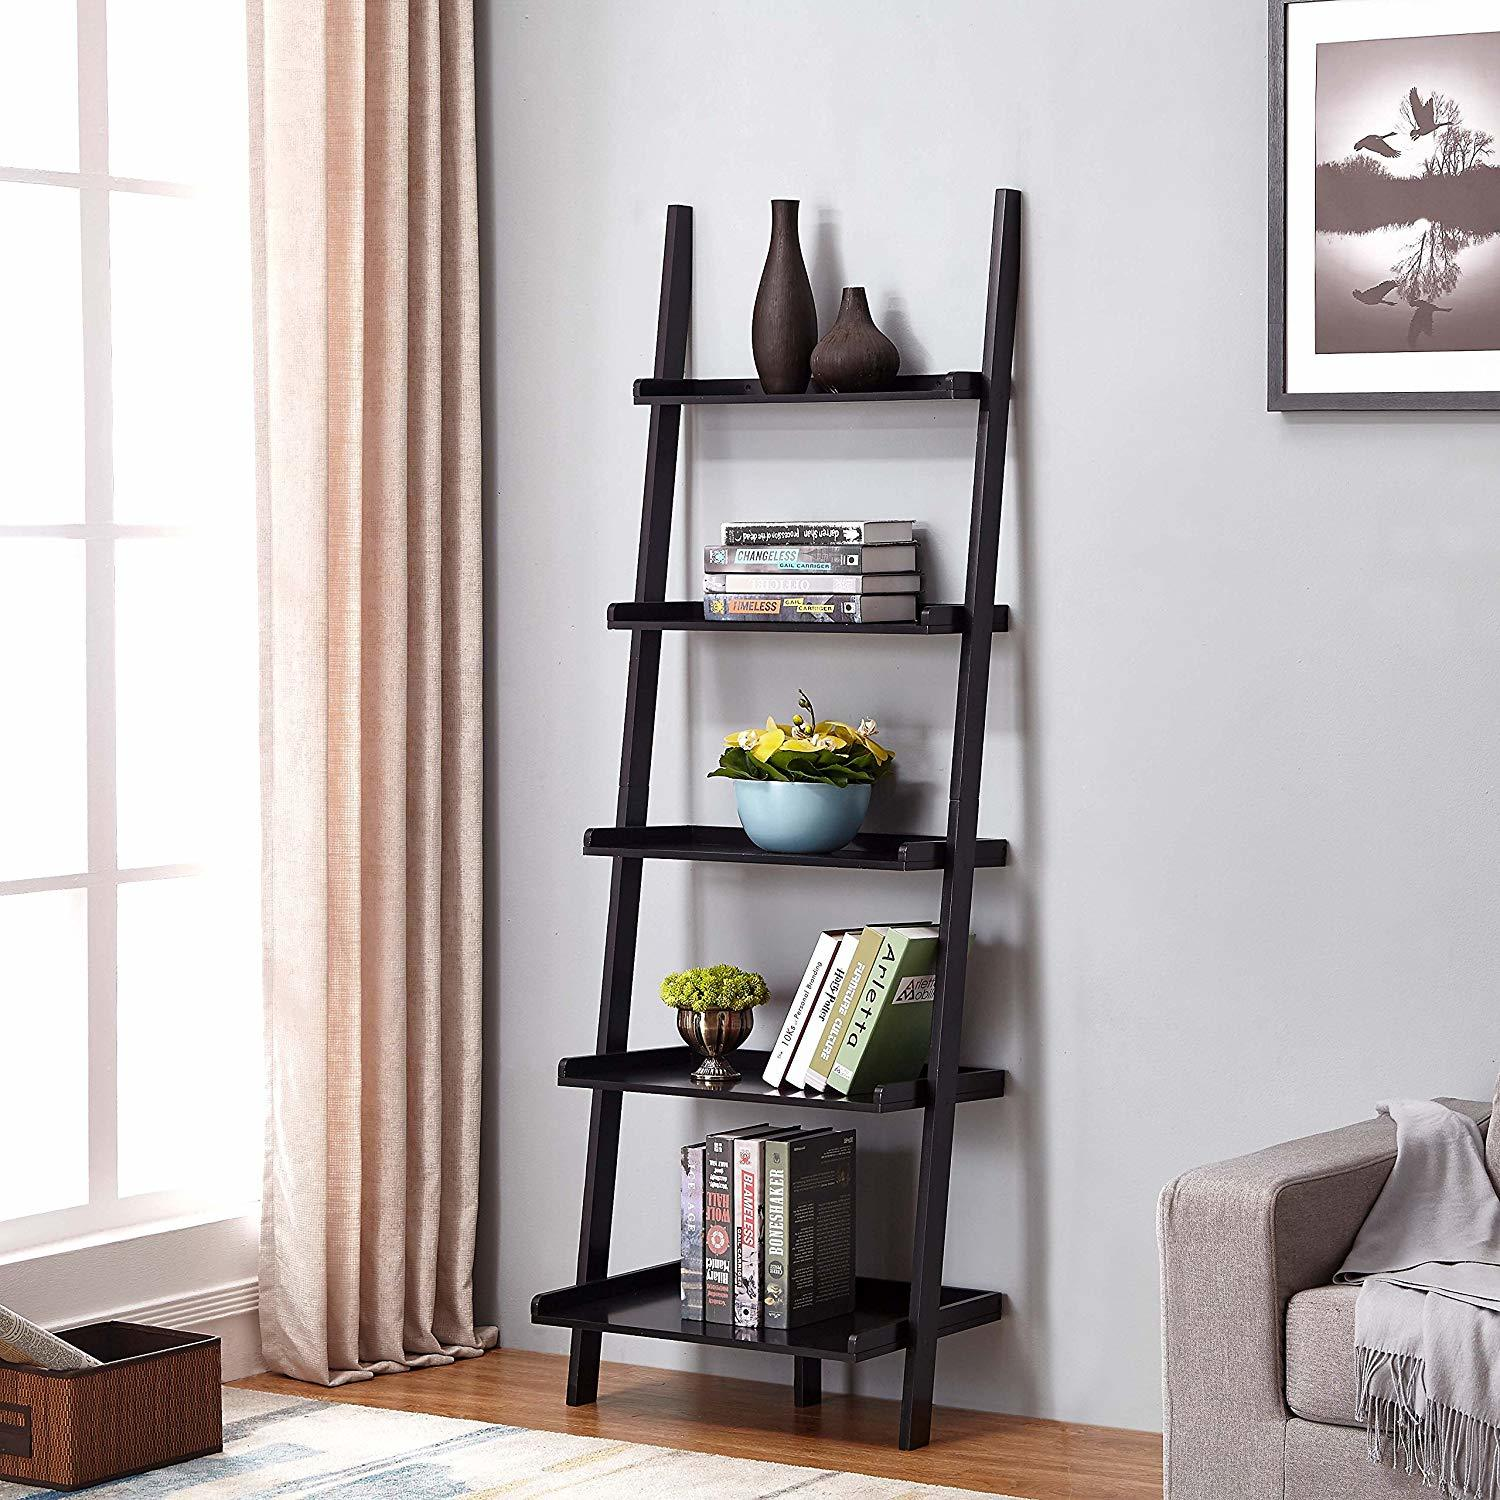 shoe storage hacks features 5-tier of ladder shelving for any home decor